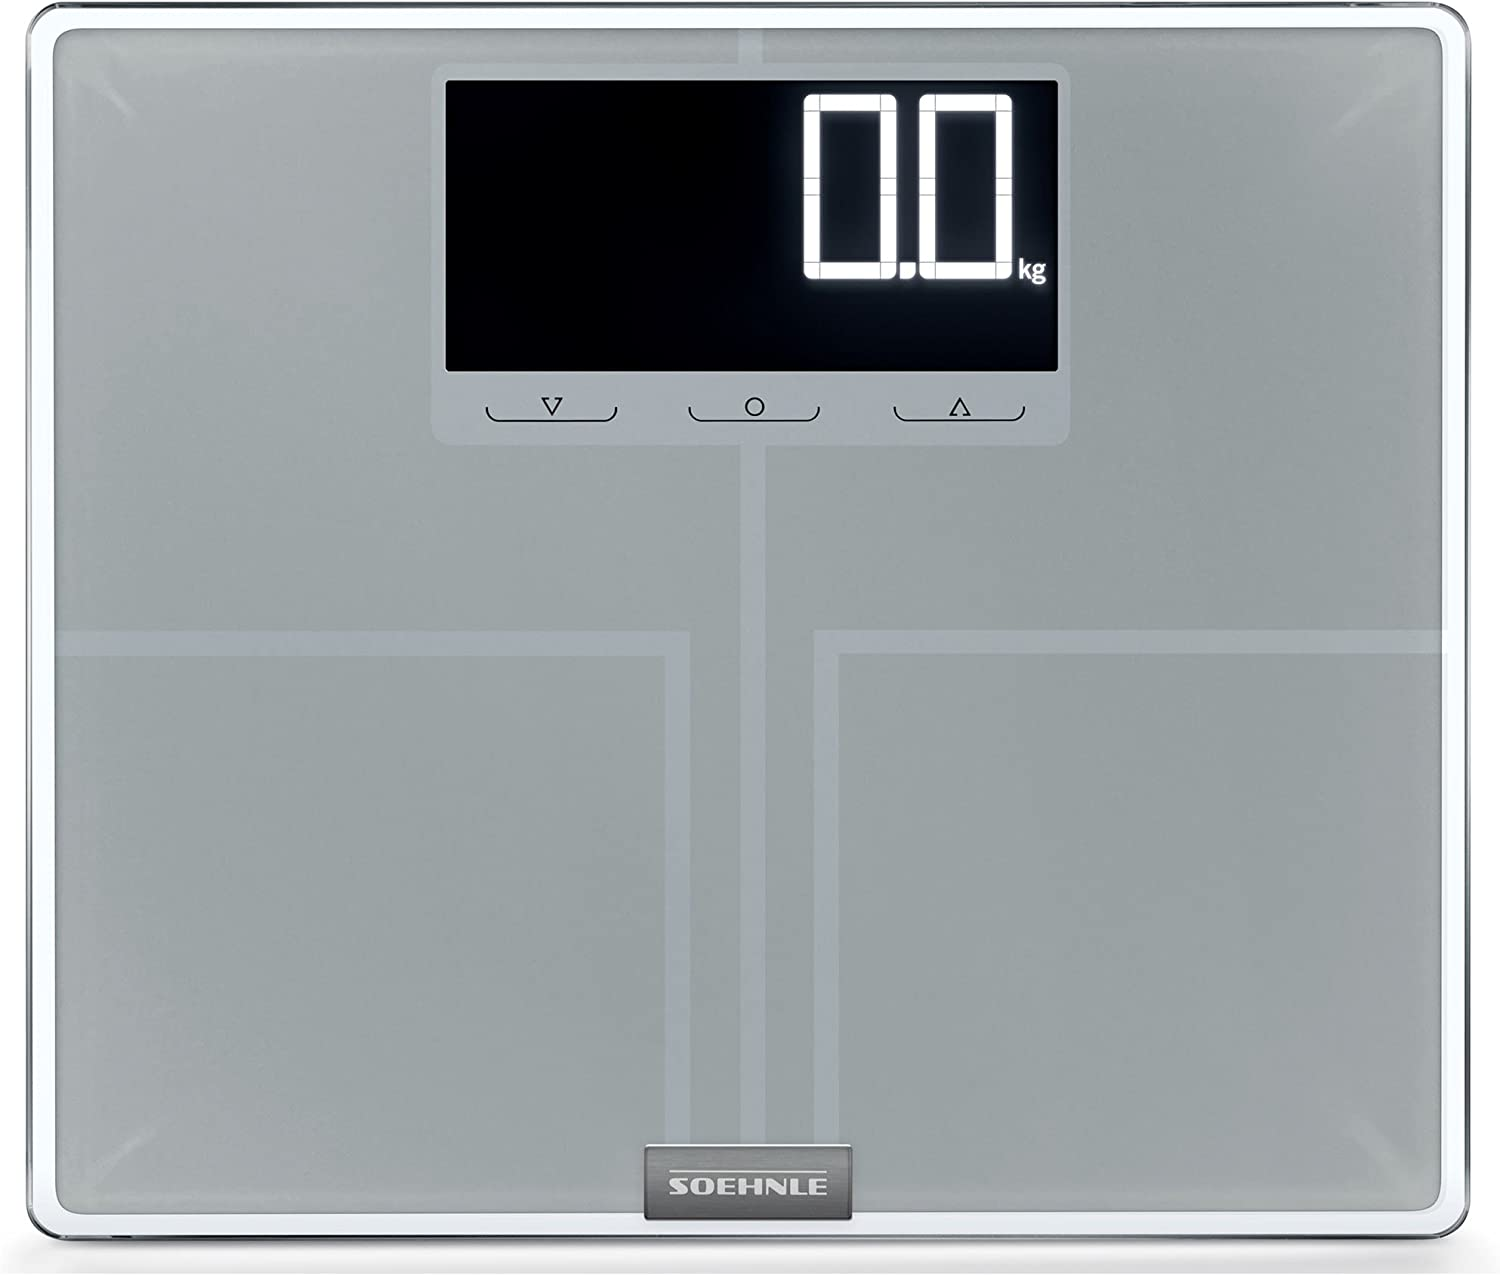 Soehnle 63869 Shape Sense Profi Digital Bathroom Scale   Silver